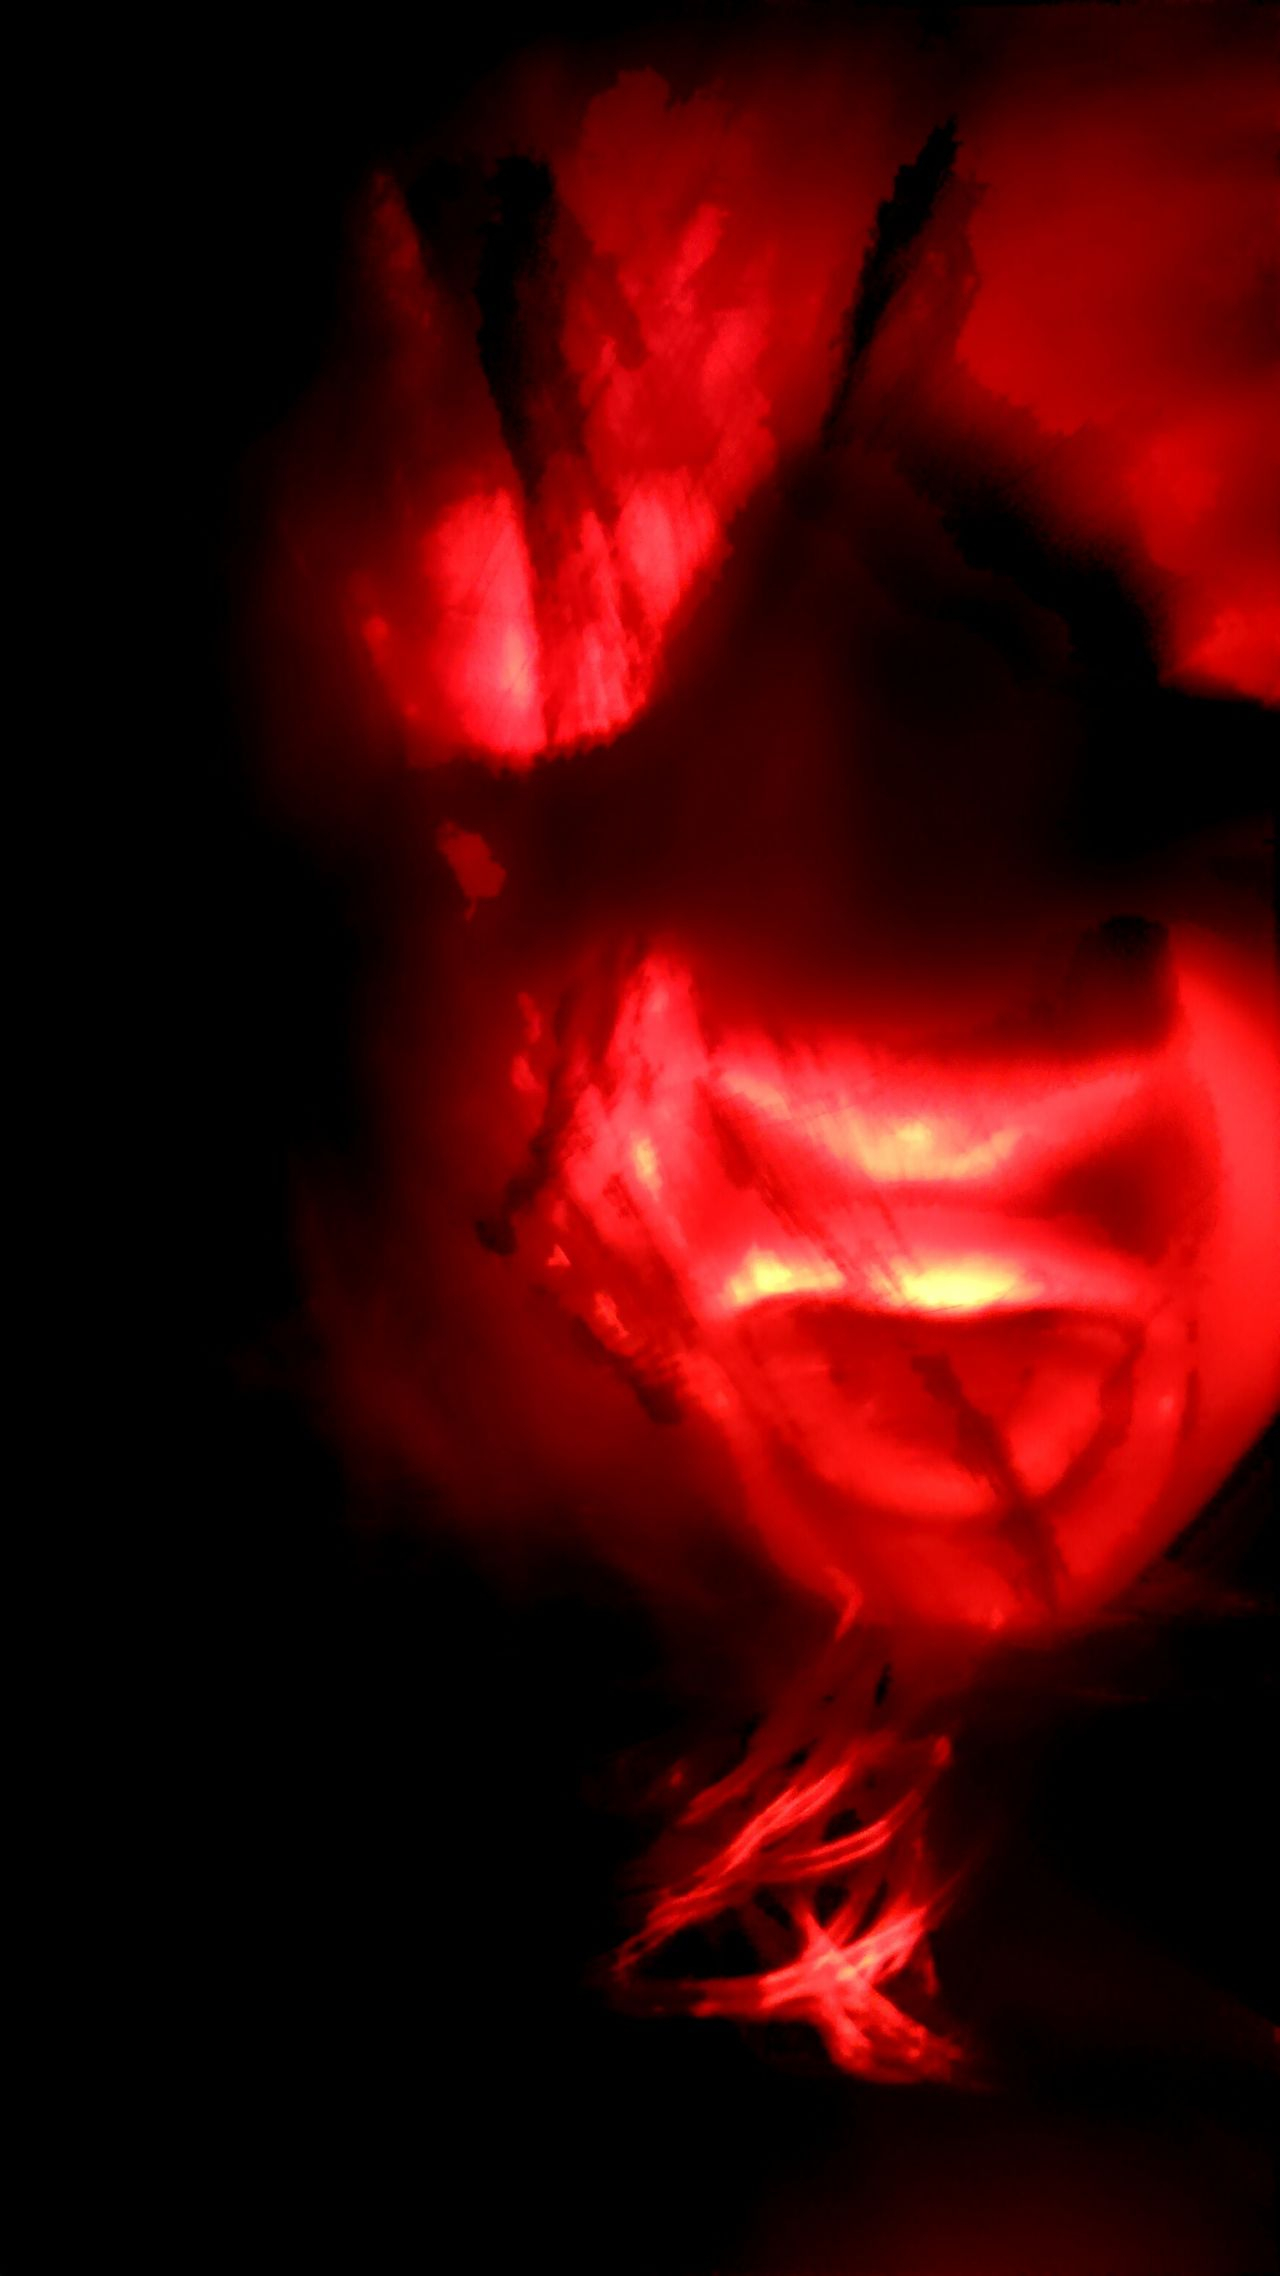 Scary Stuff  Atmospheric Mood Vibrant Color Bonfire Kids Playing Glowing Dramatic Sky Majestic Power In Nature Ethereal Red Light Frightening Moment Ghost Face